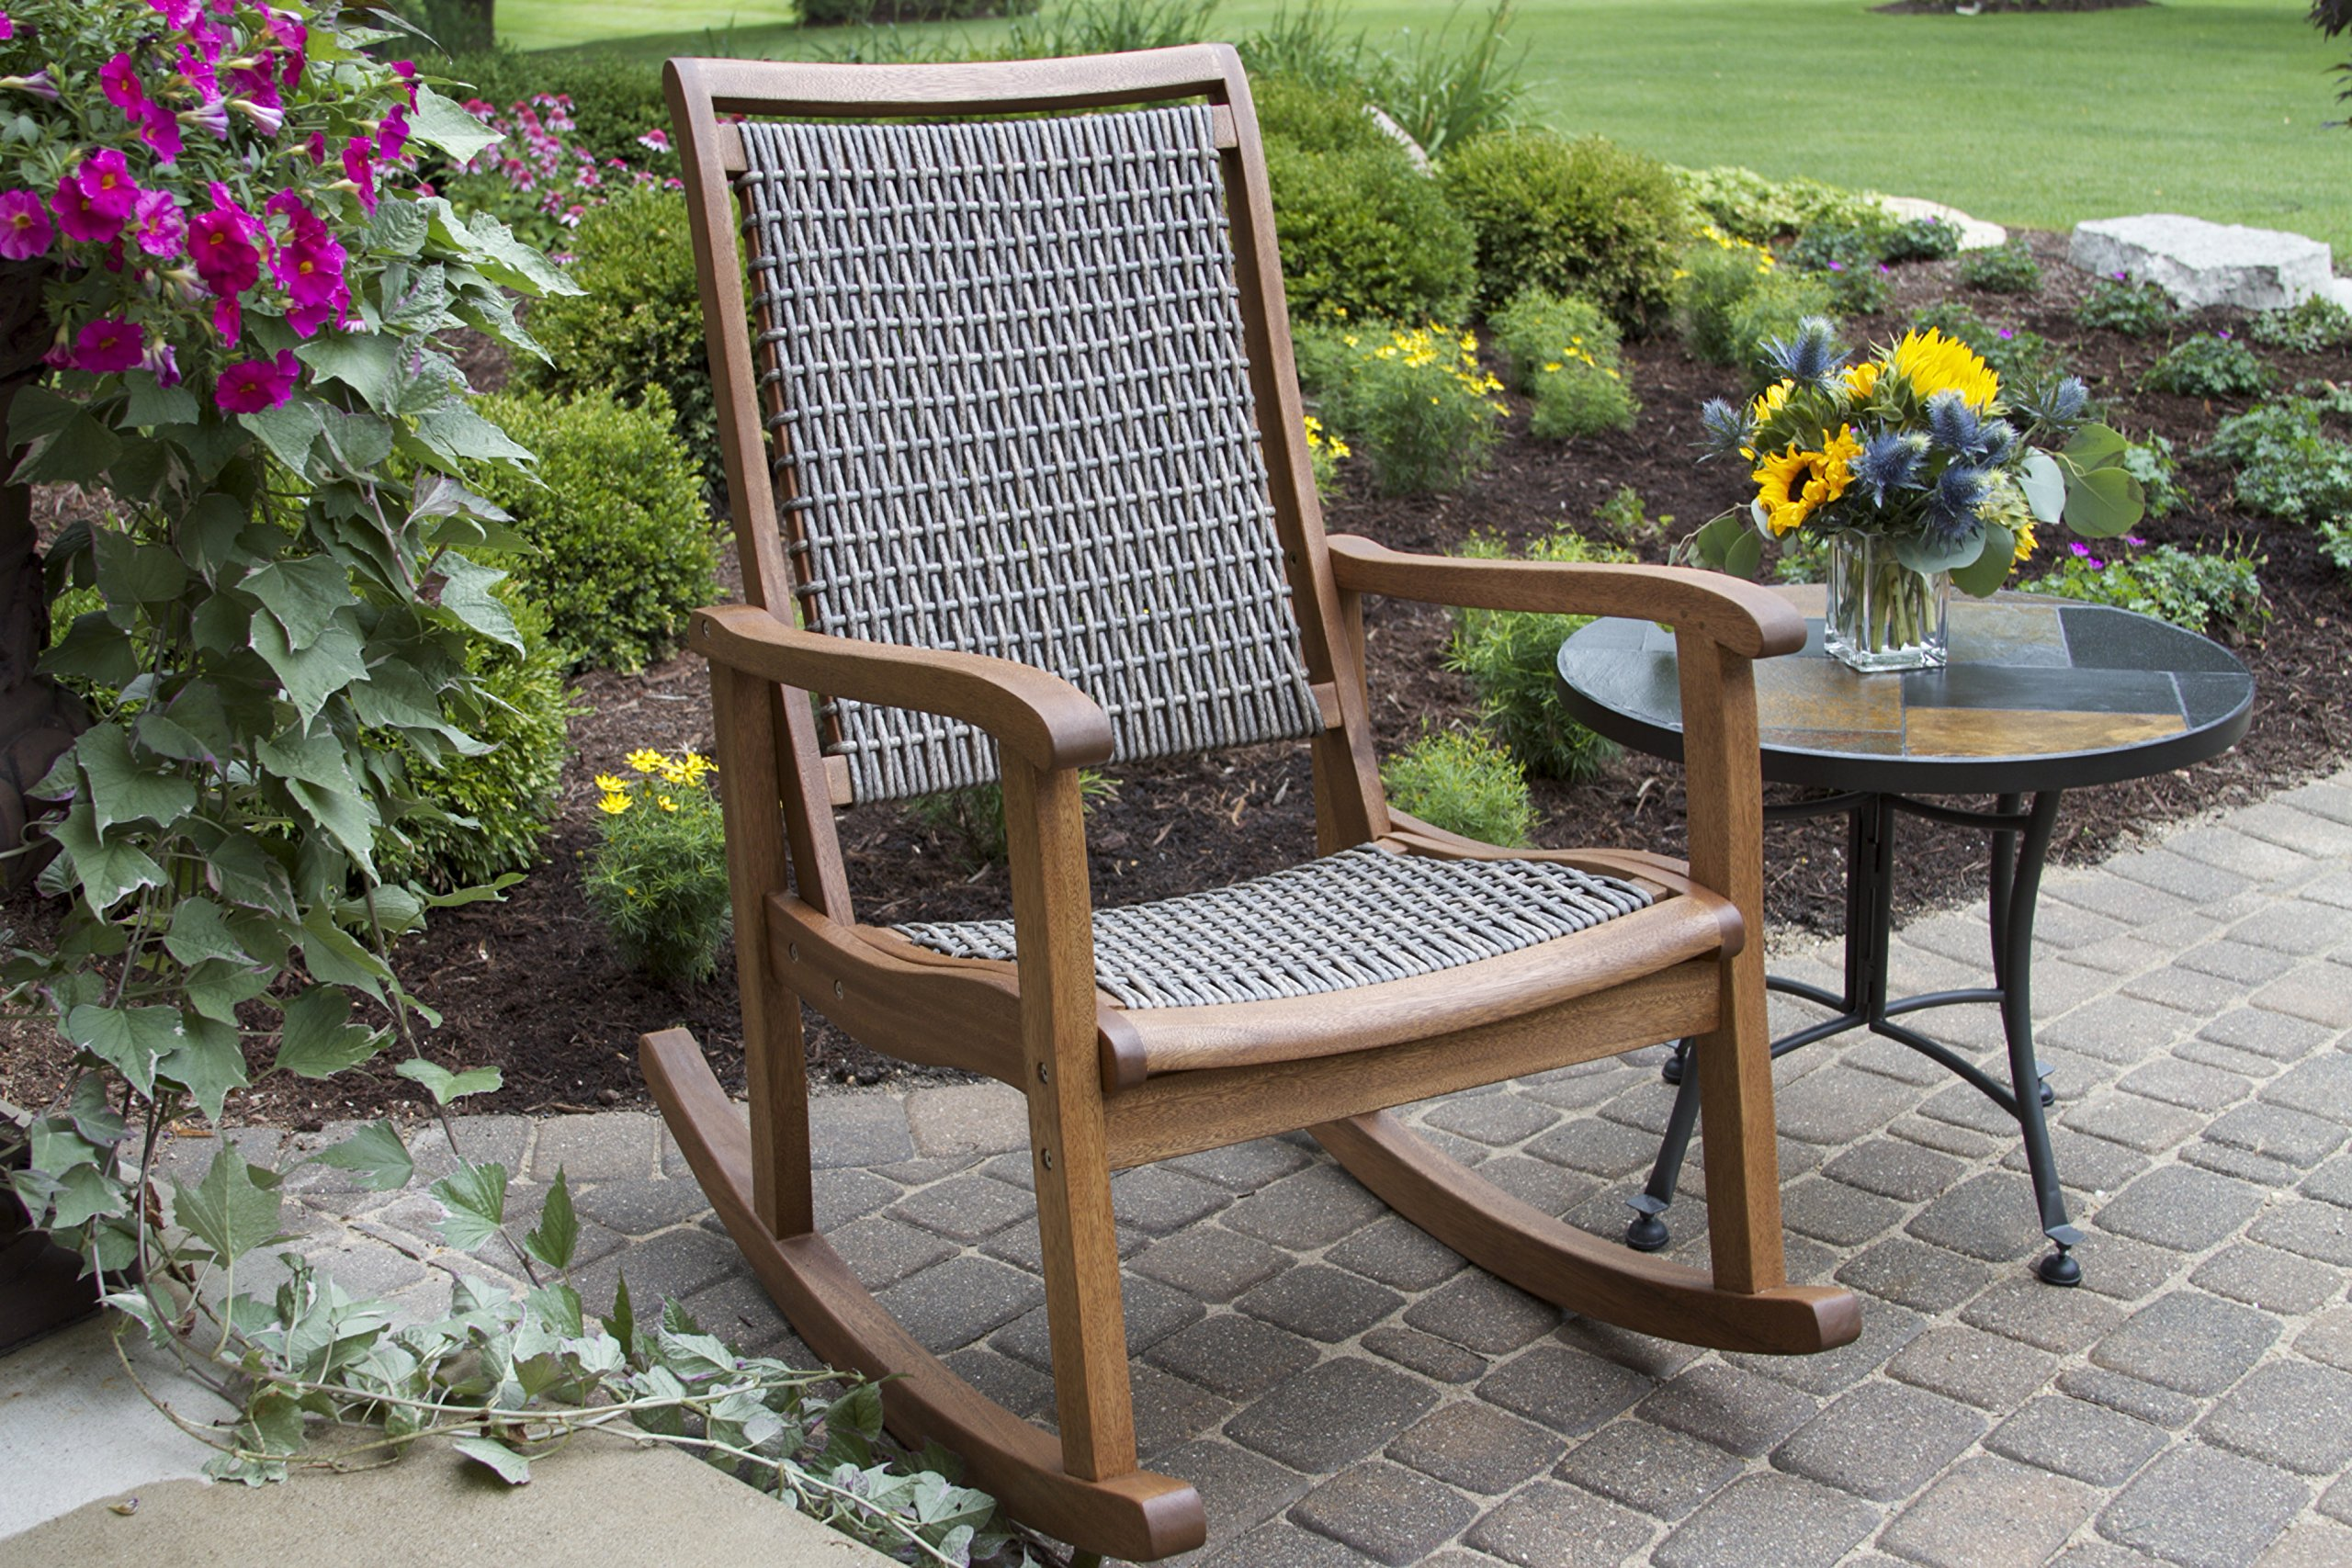 Outdoor Interiors Resin Wicker and Eucalyptus Rocking Chair, Brown and Grey by Outdoor Interiors